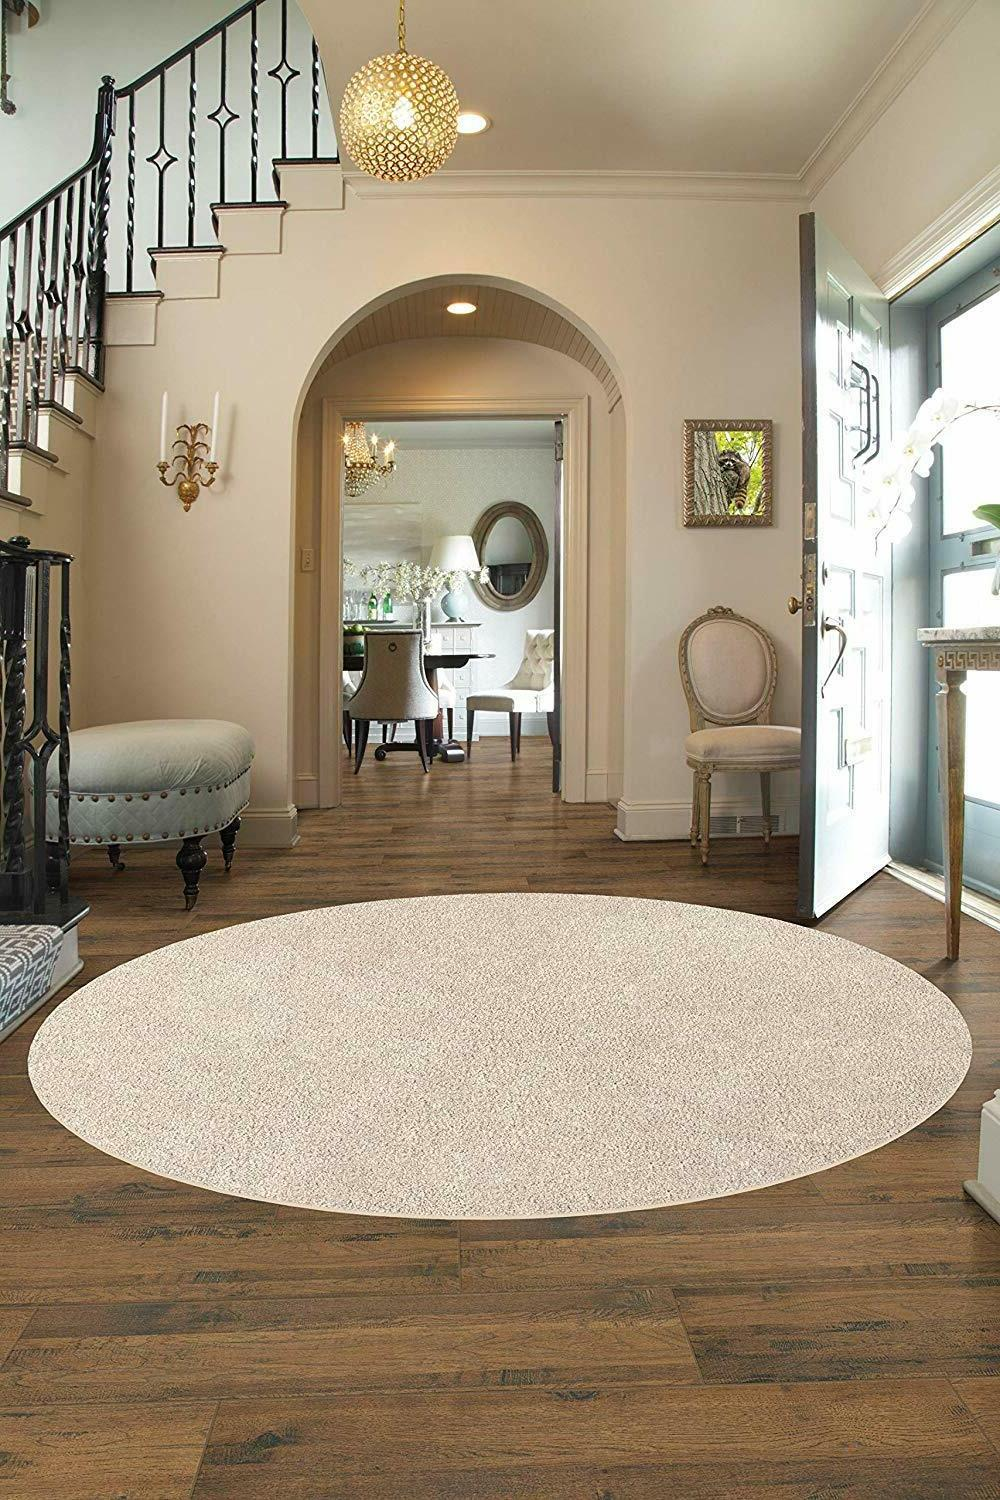 Soft Cozy Graham Cracker Area Rug Multiple Sizes and Shapes